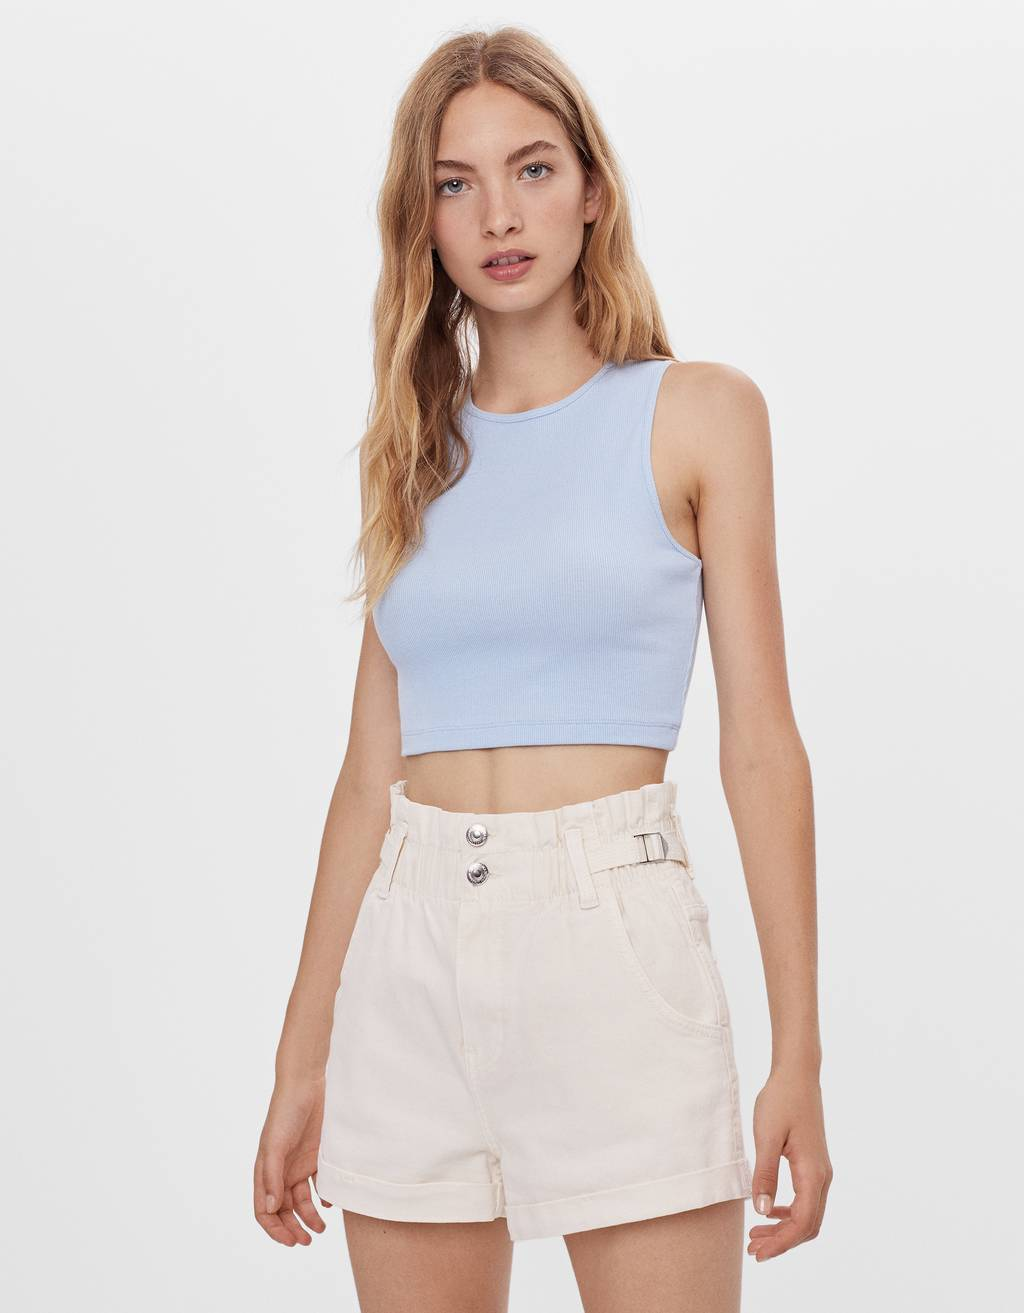 Shorts with an elastic waistband and belt loops.